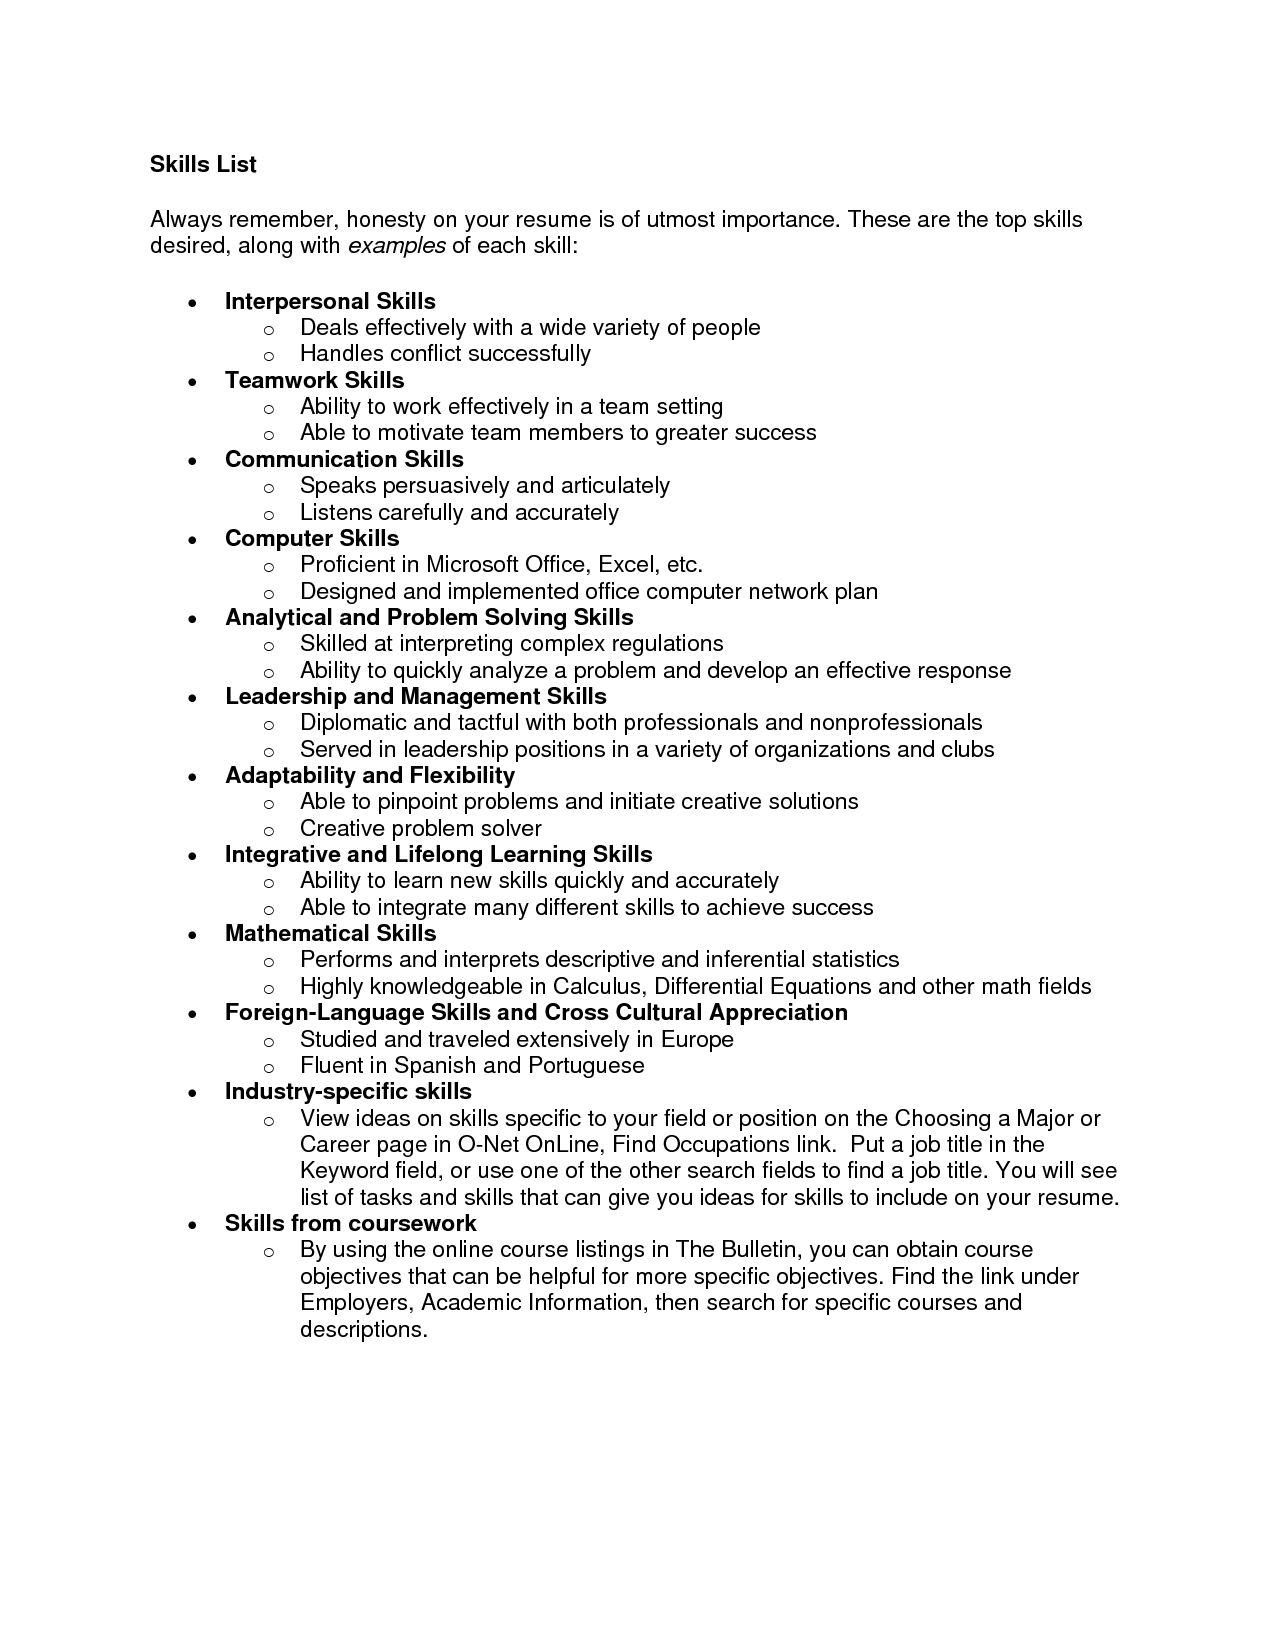 Skills And Abilities For Resume Resume Additional Skills Examples Sample Hard Information And